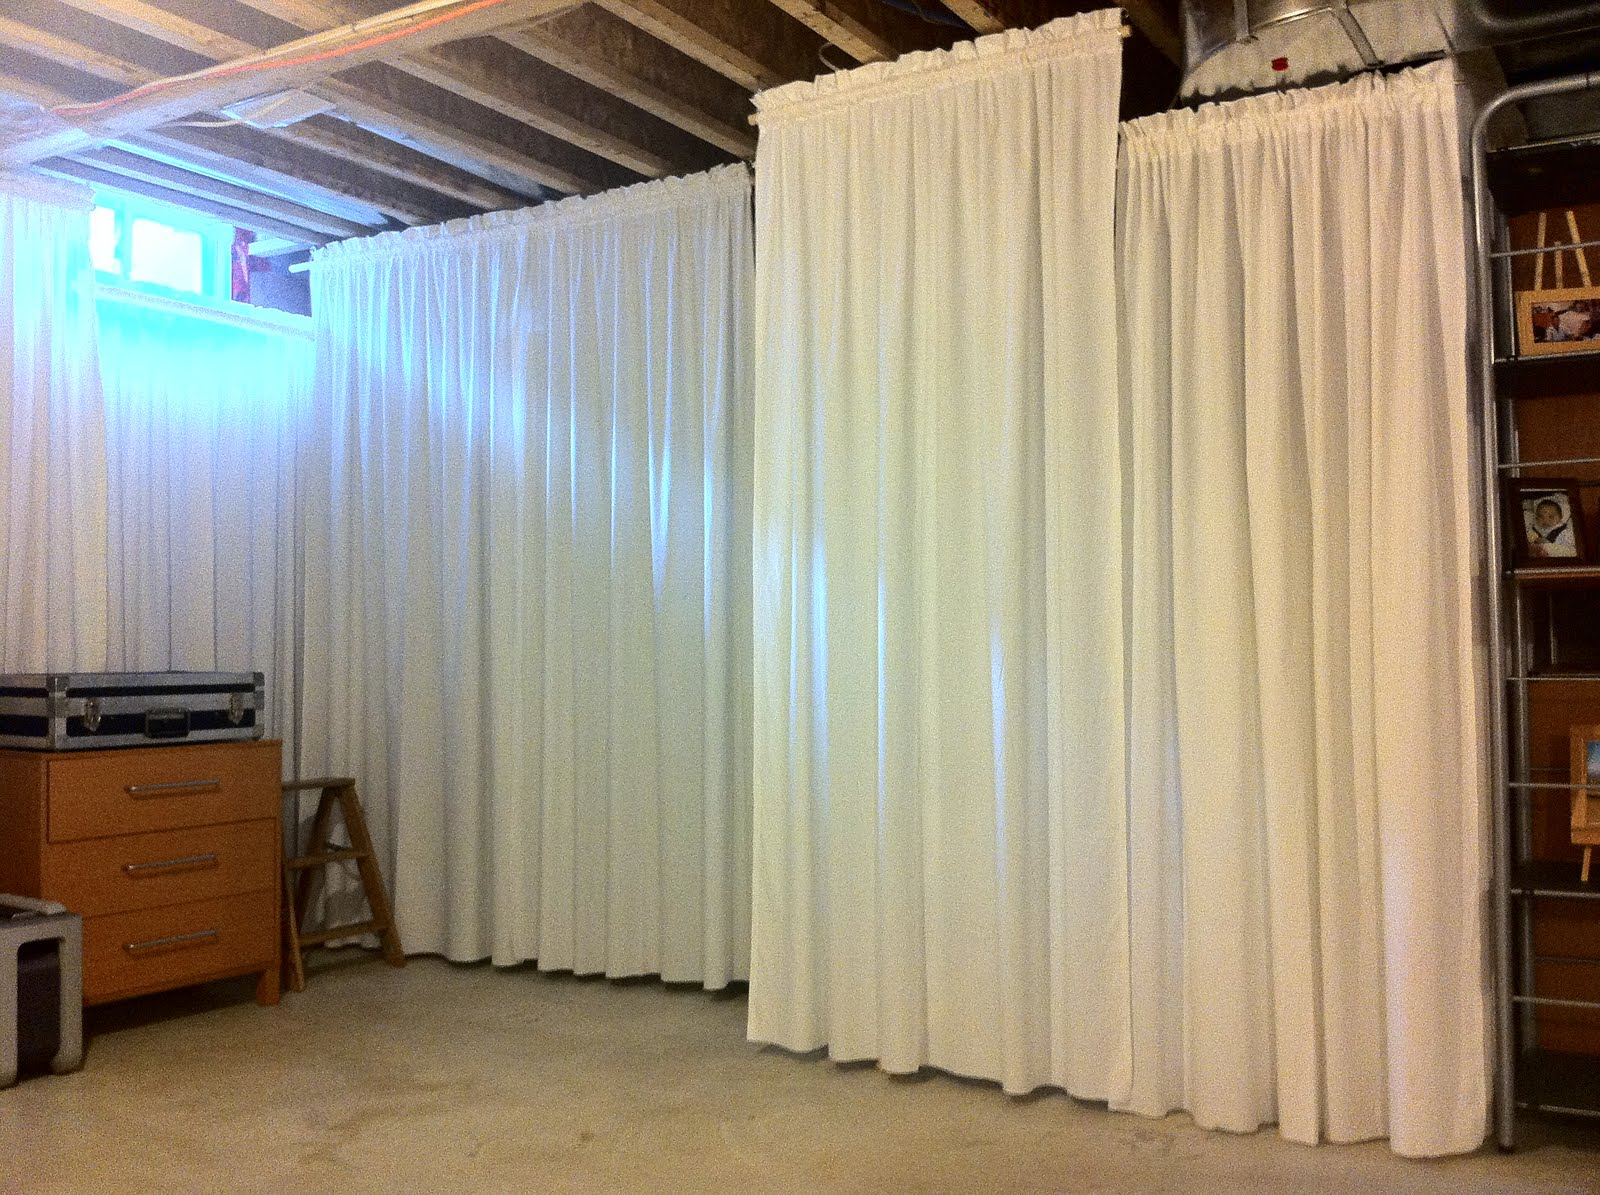 Covering Walls With Curtains : Houseonashoestring unfinished basement main area